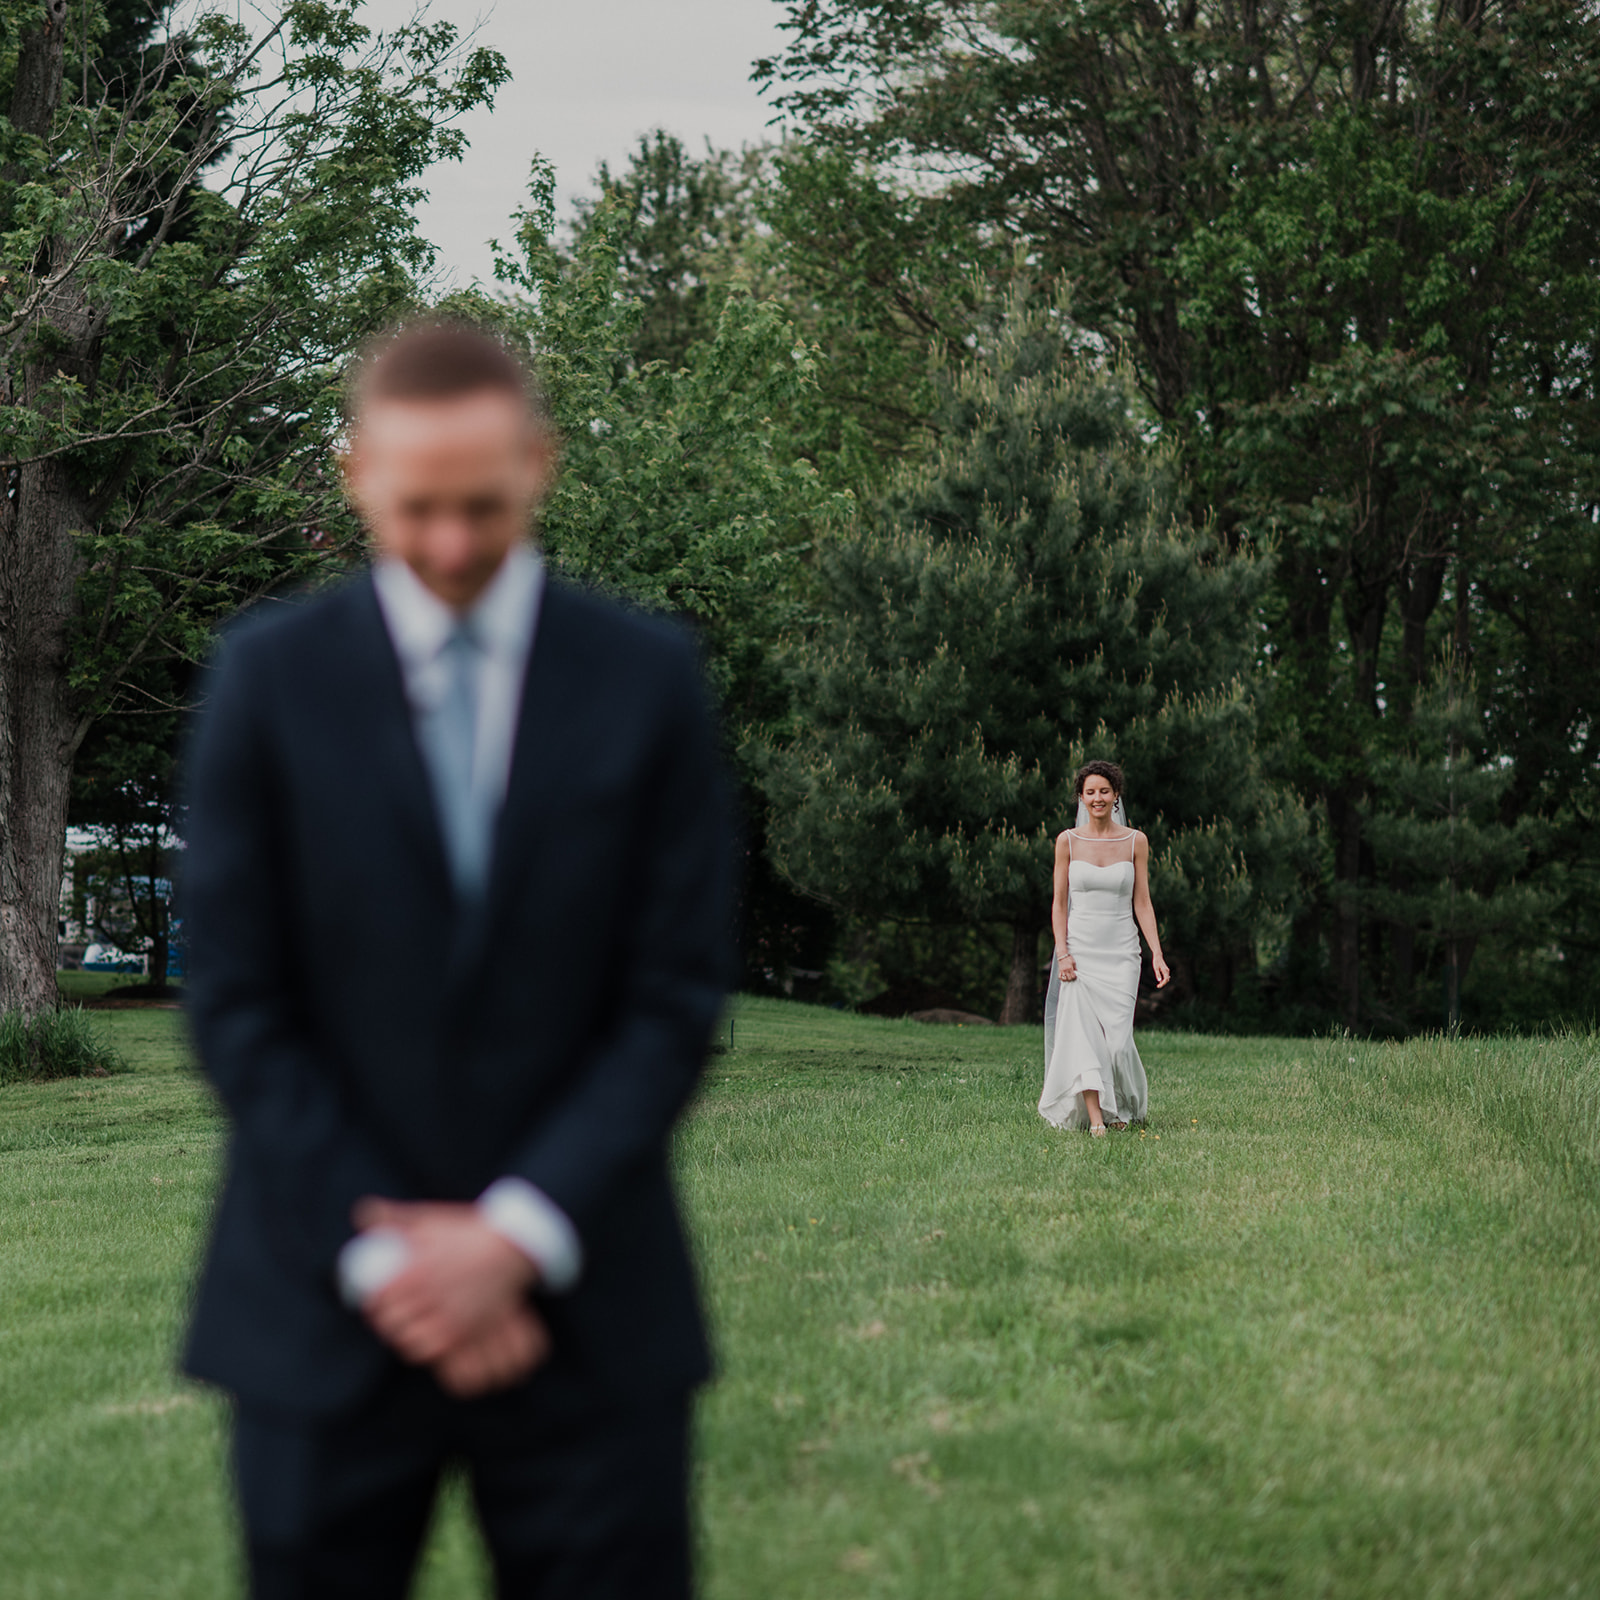 A groom waits while his bride walks up behind him for a first look before their outdoor wedding ceremony at Blue Hill Farm in Waterford, VA.